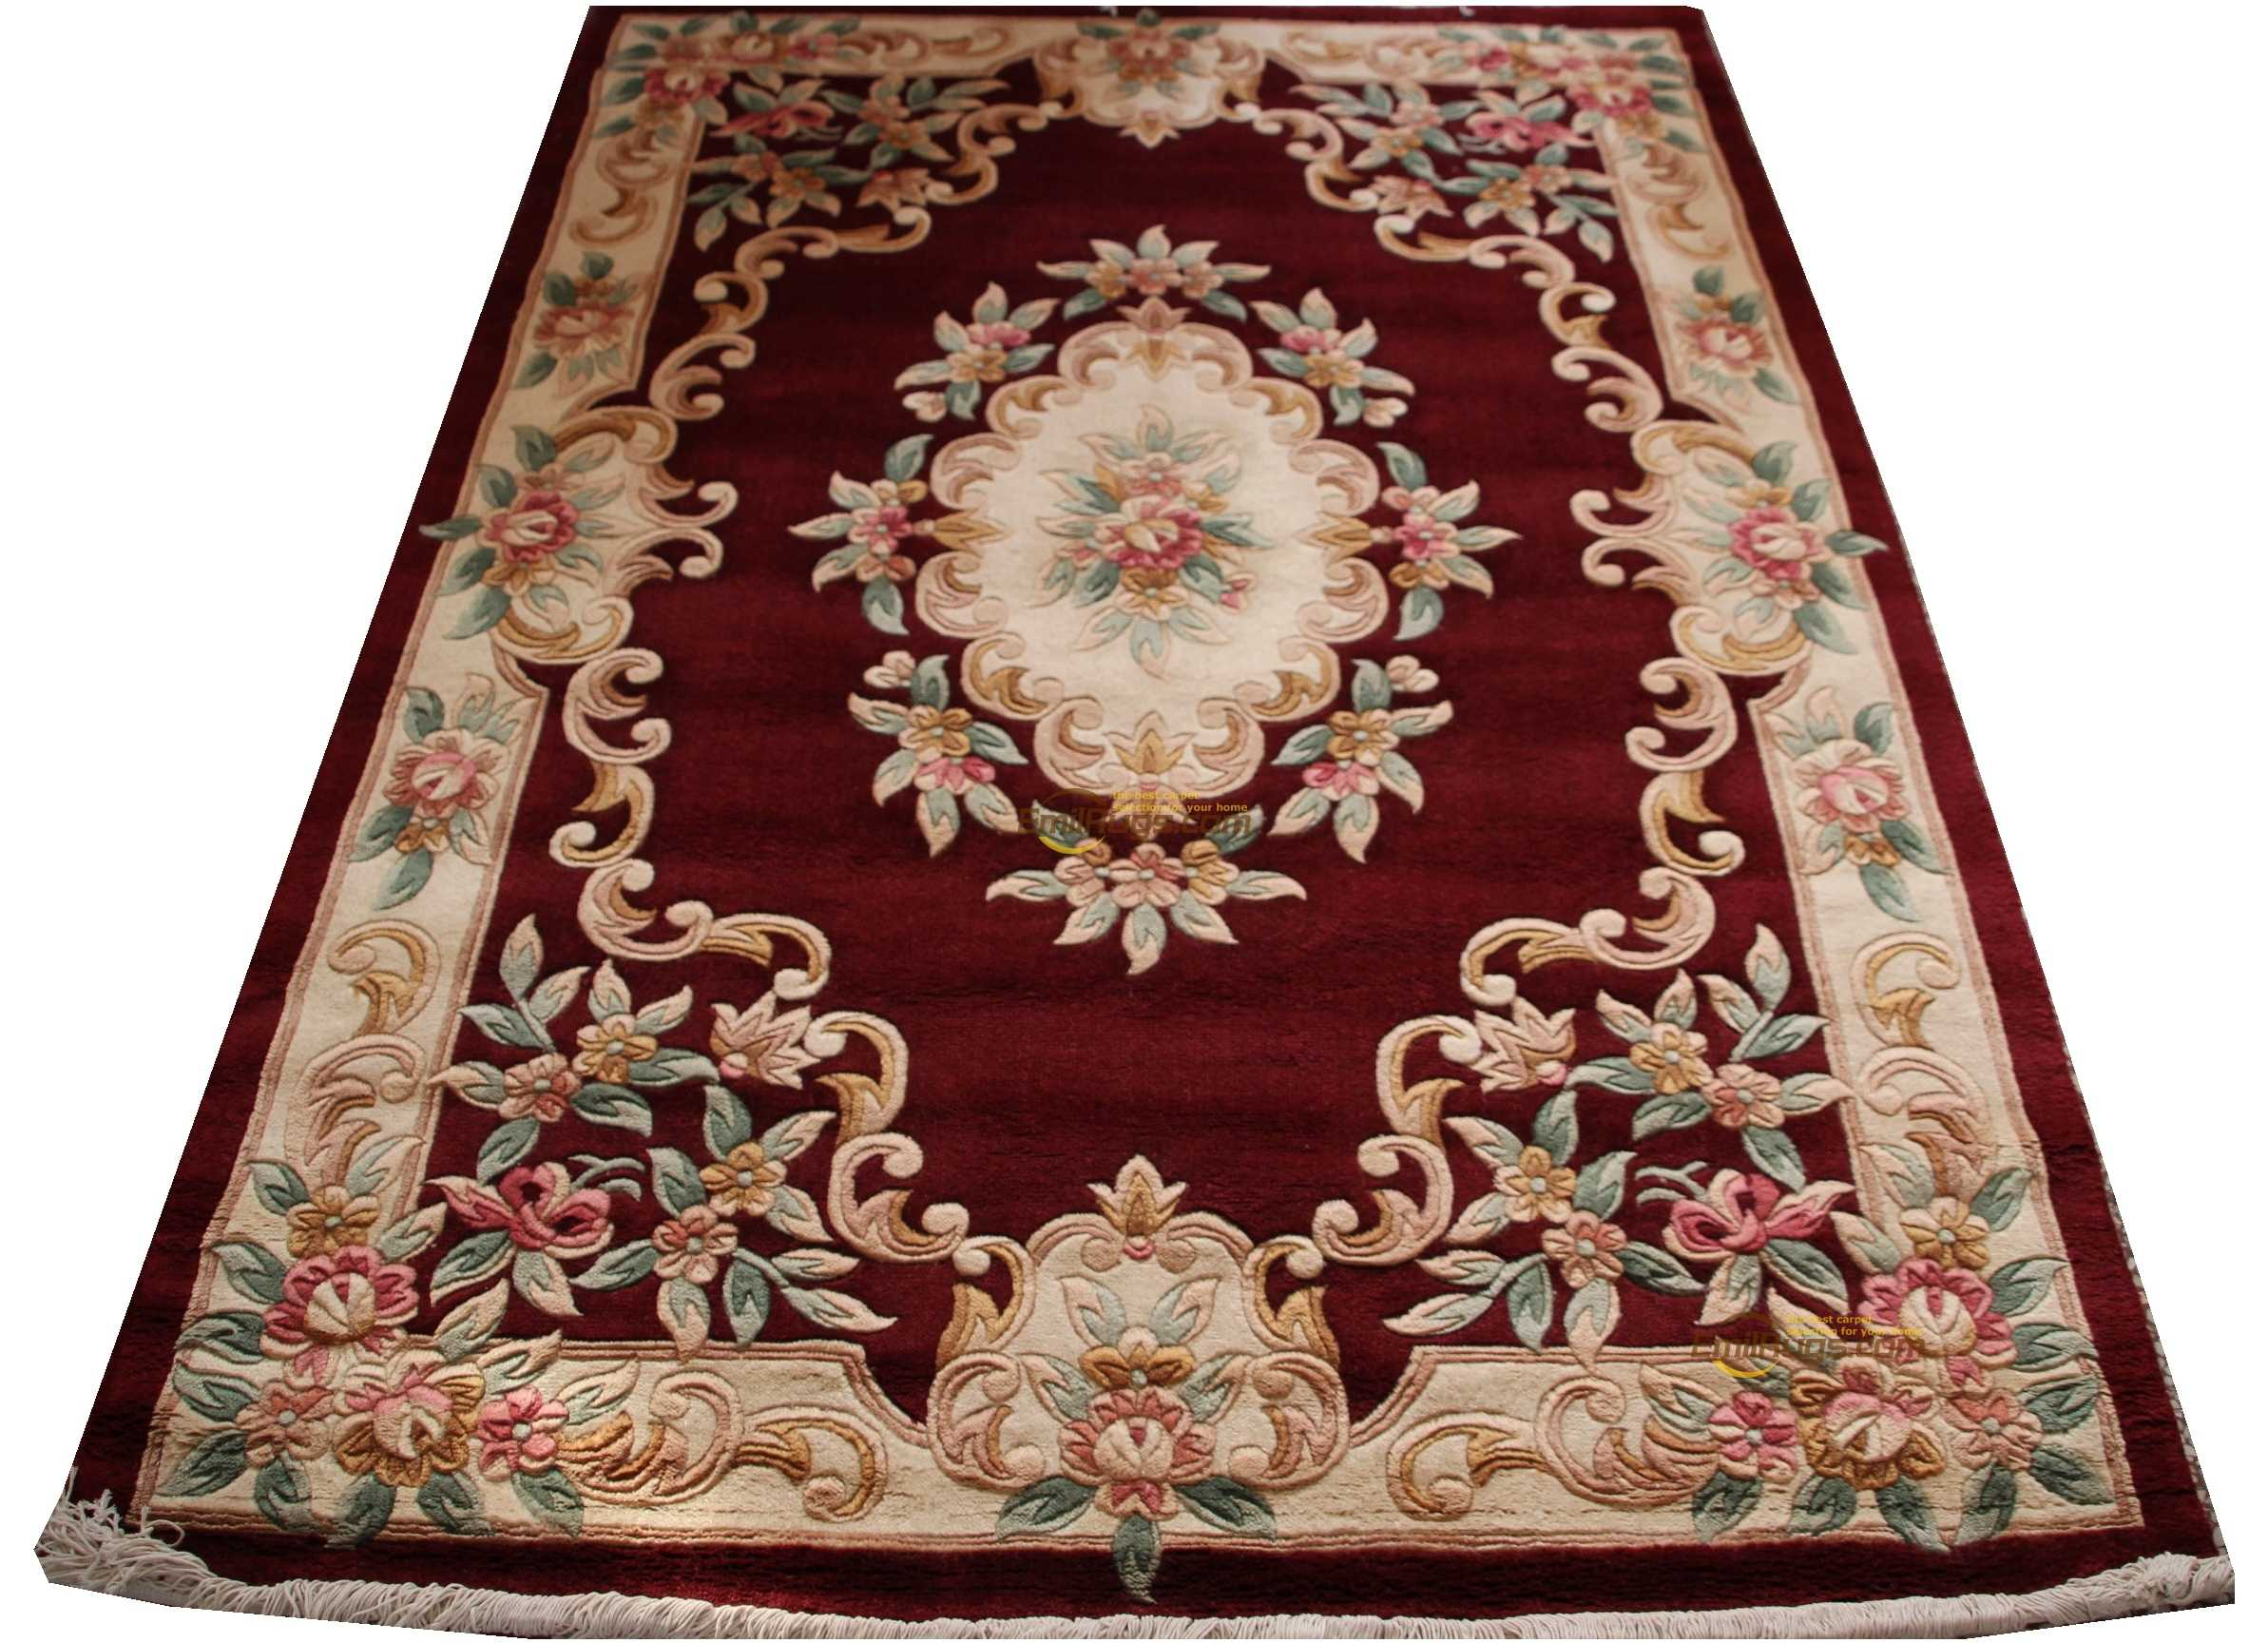 Rose Carpet French Savonnerie Hand Knotted Wool Rug Carpet Needlepoint Circular Fashion Carpet Living Room Indoor Carpet